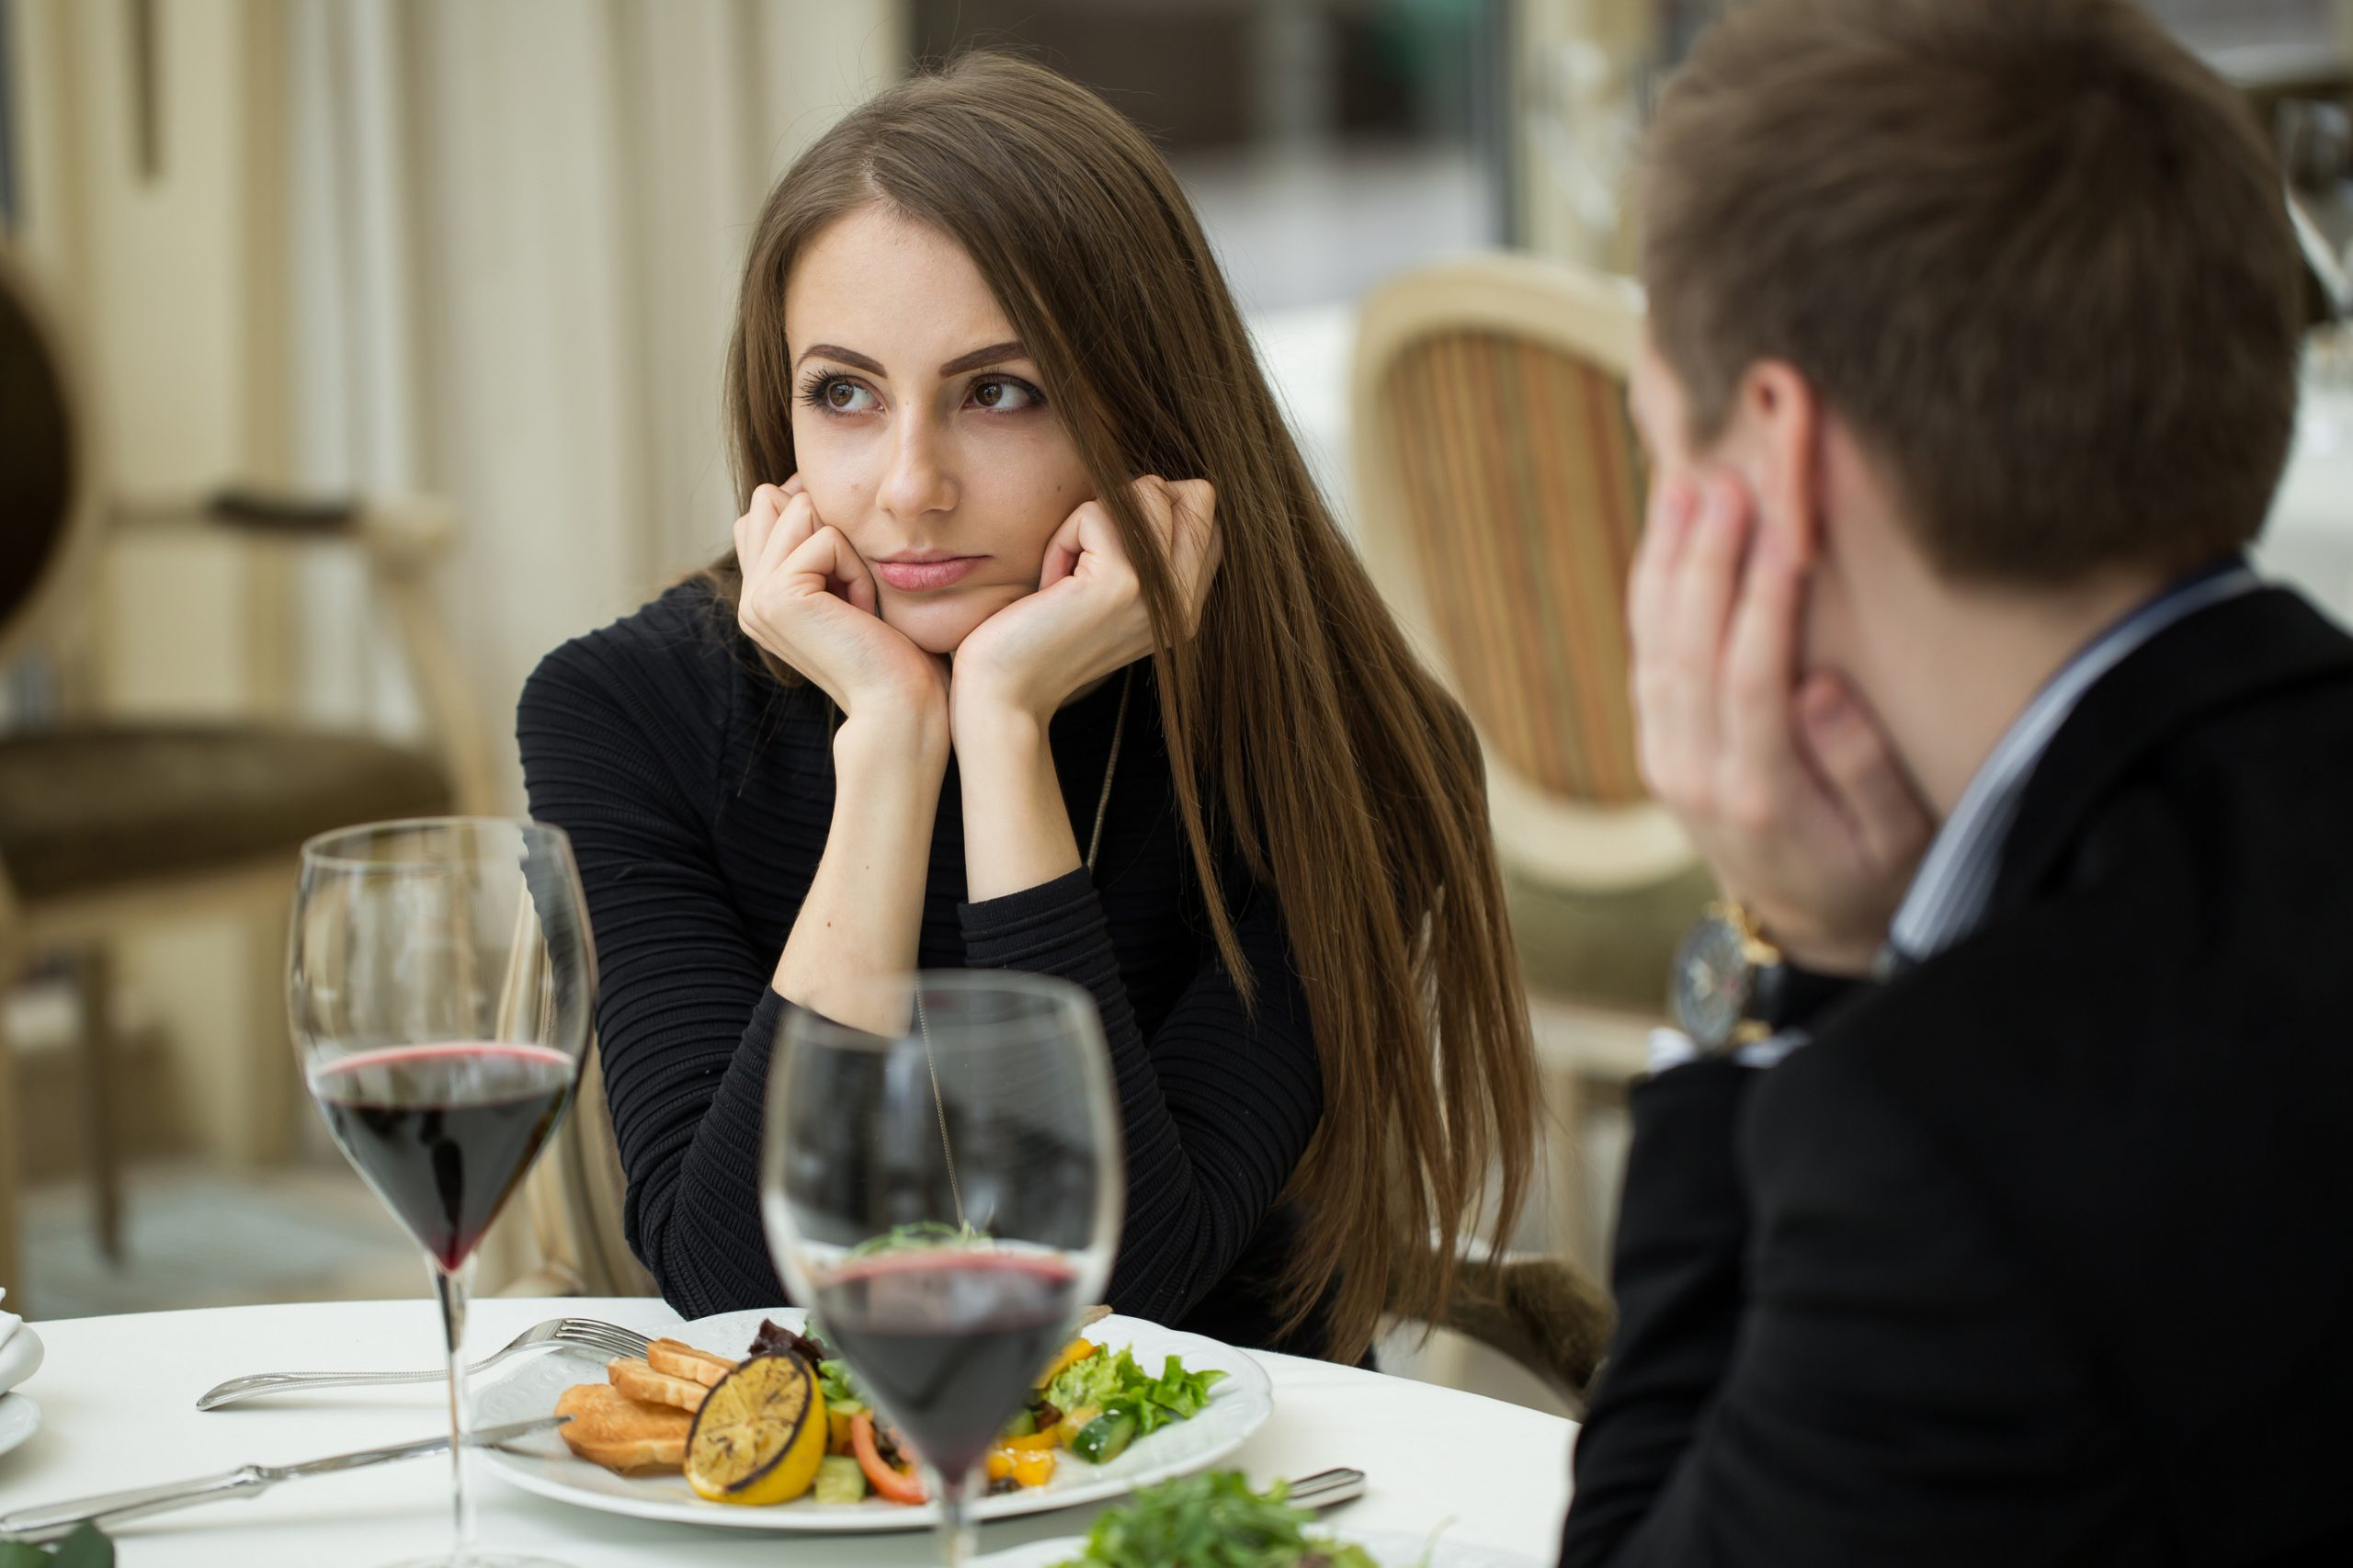 8 Tips On How To Get Over Someone You Almost Dated